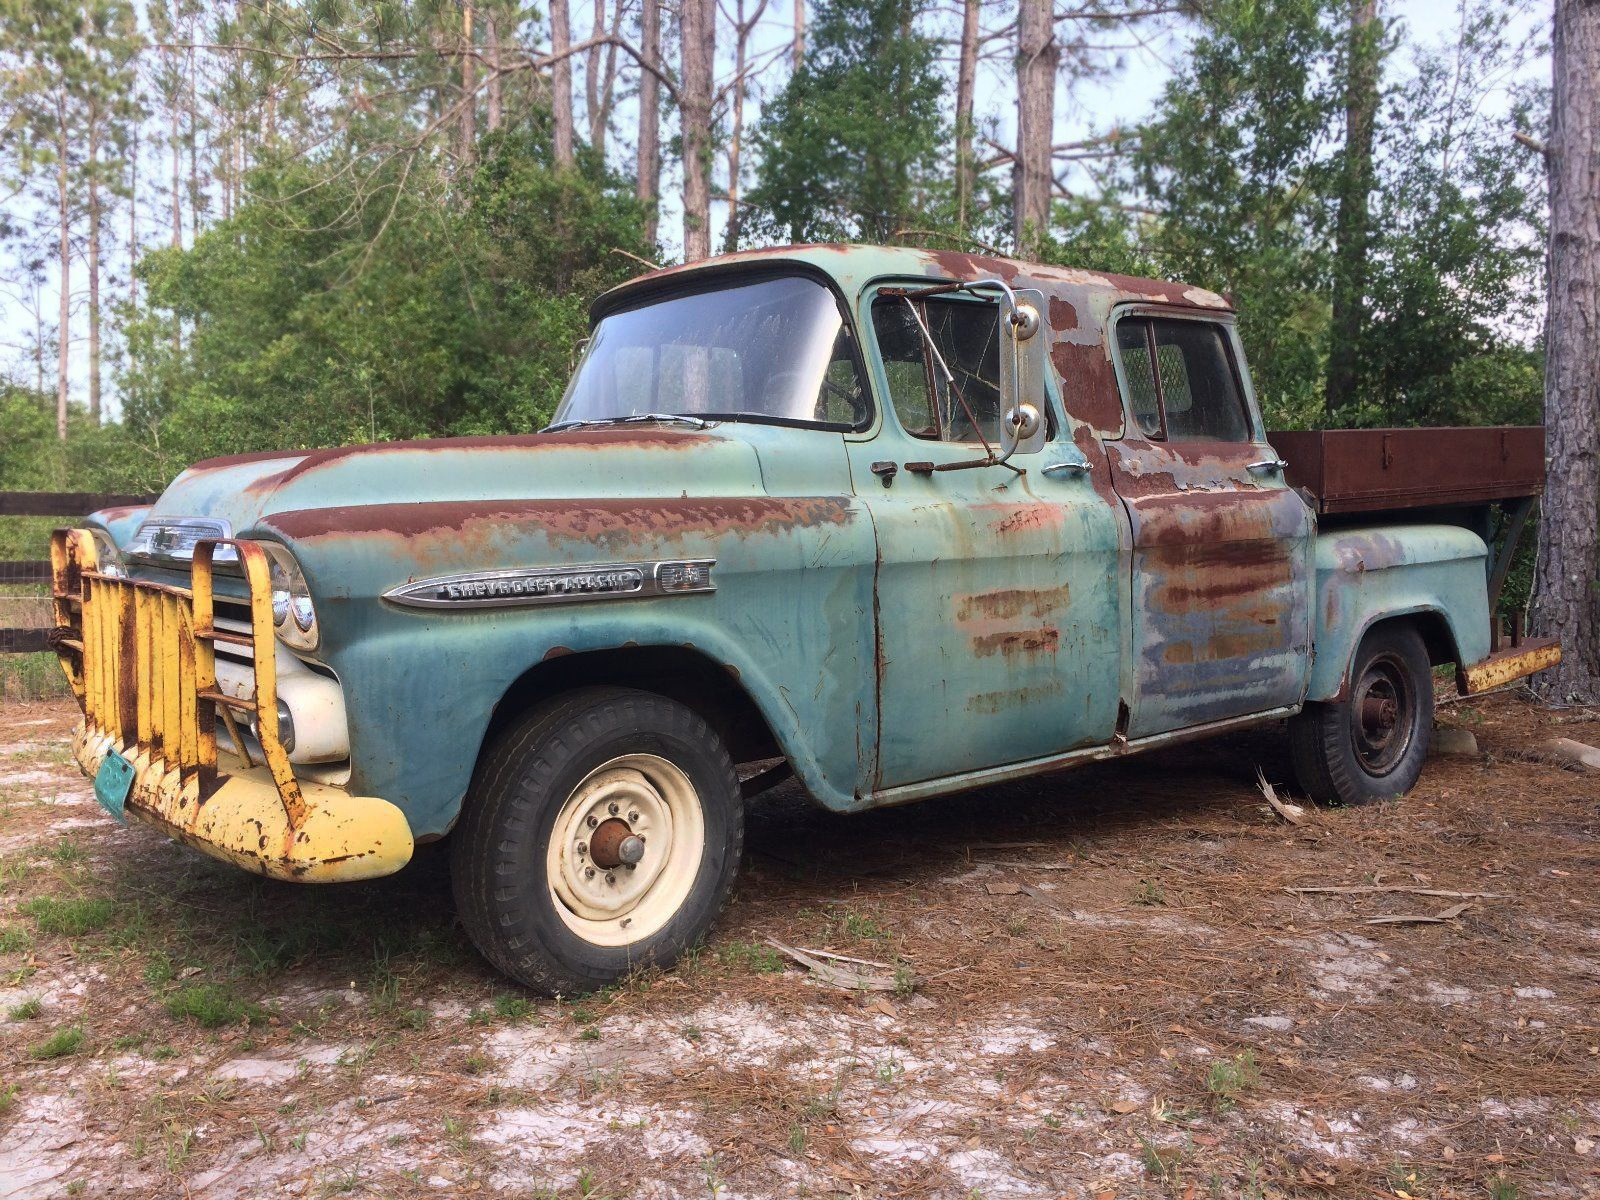 1969 Chevy Truck For Sale >> Armbruster Apache : 1959 Chevrolet Apache